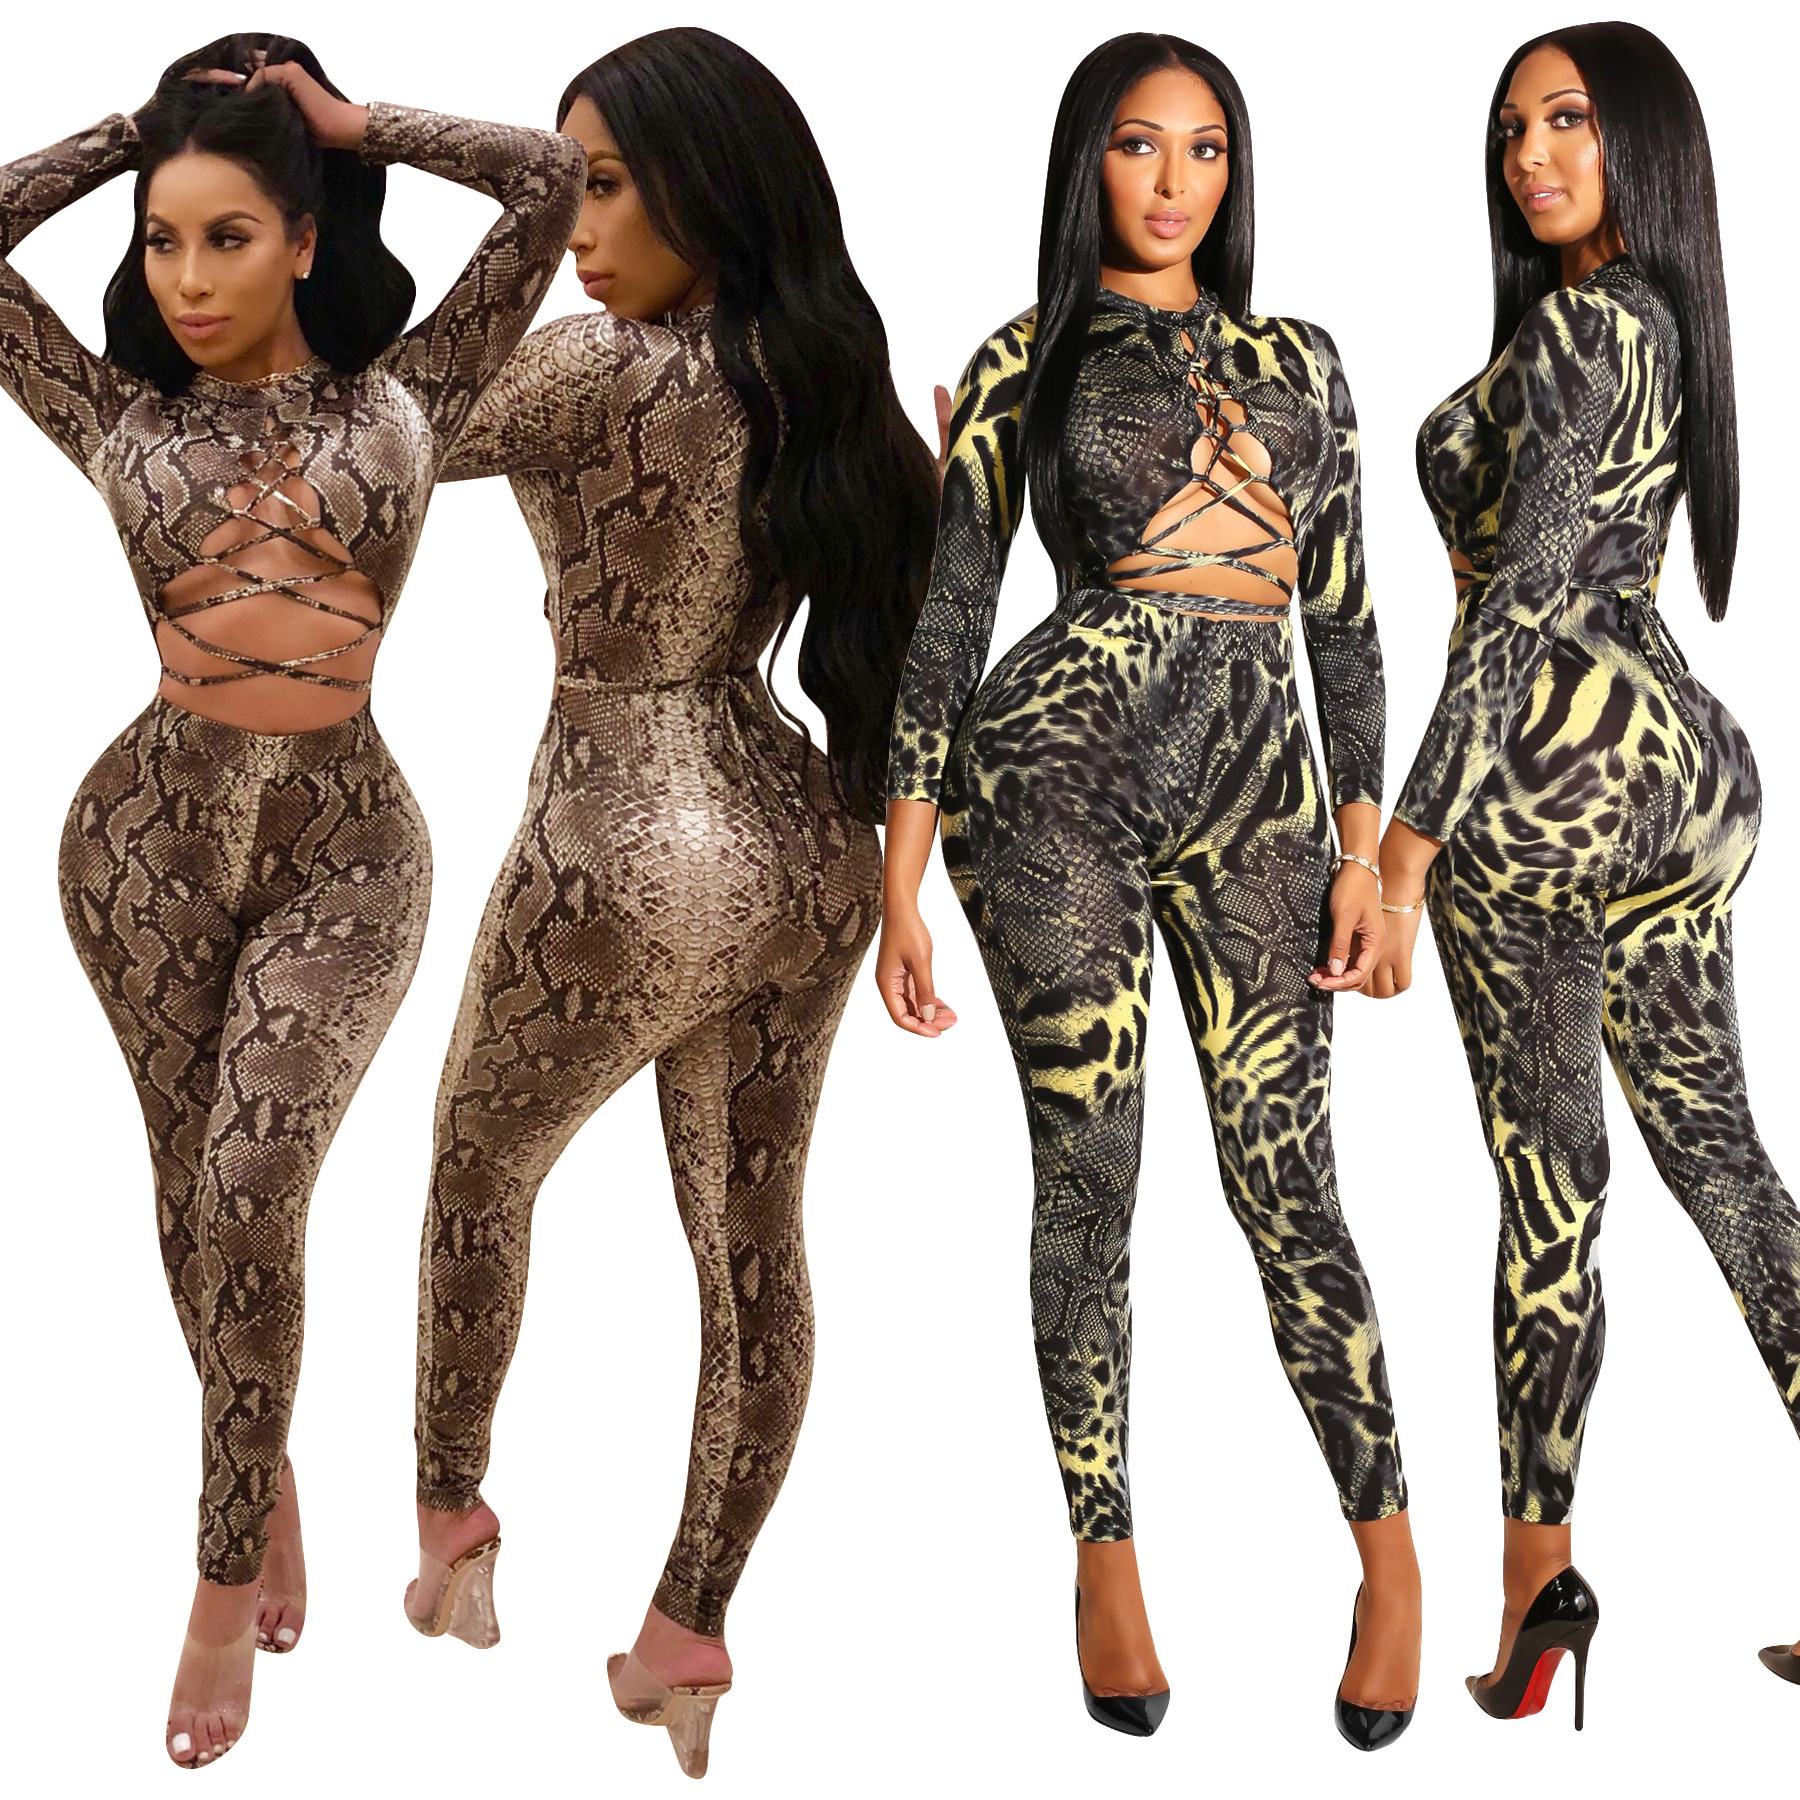 Autumn new Two Piece set Sexy women serpentine print o-neck party Bandage Crop Tops+Long pants 2018 2 pieces set